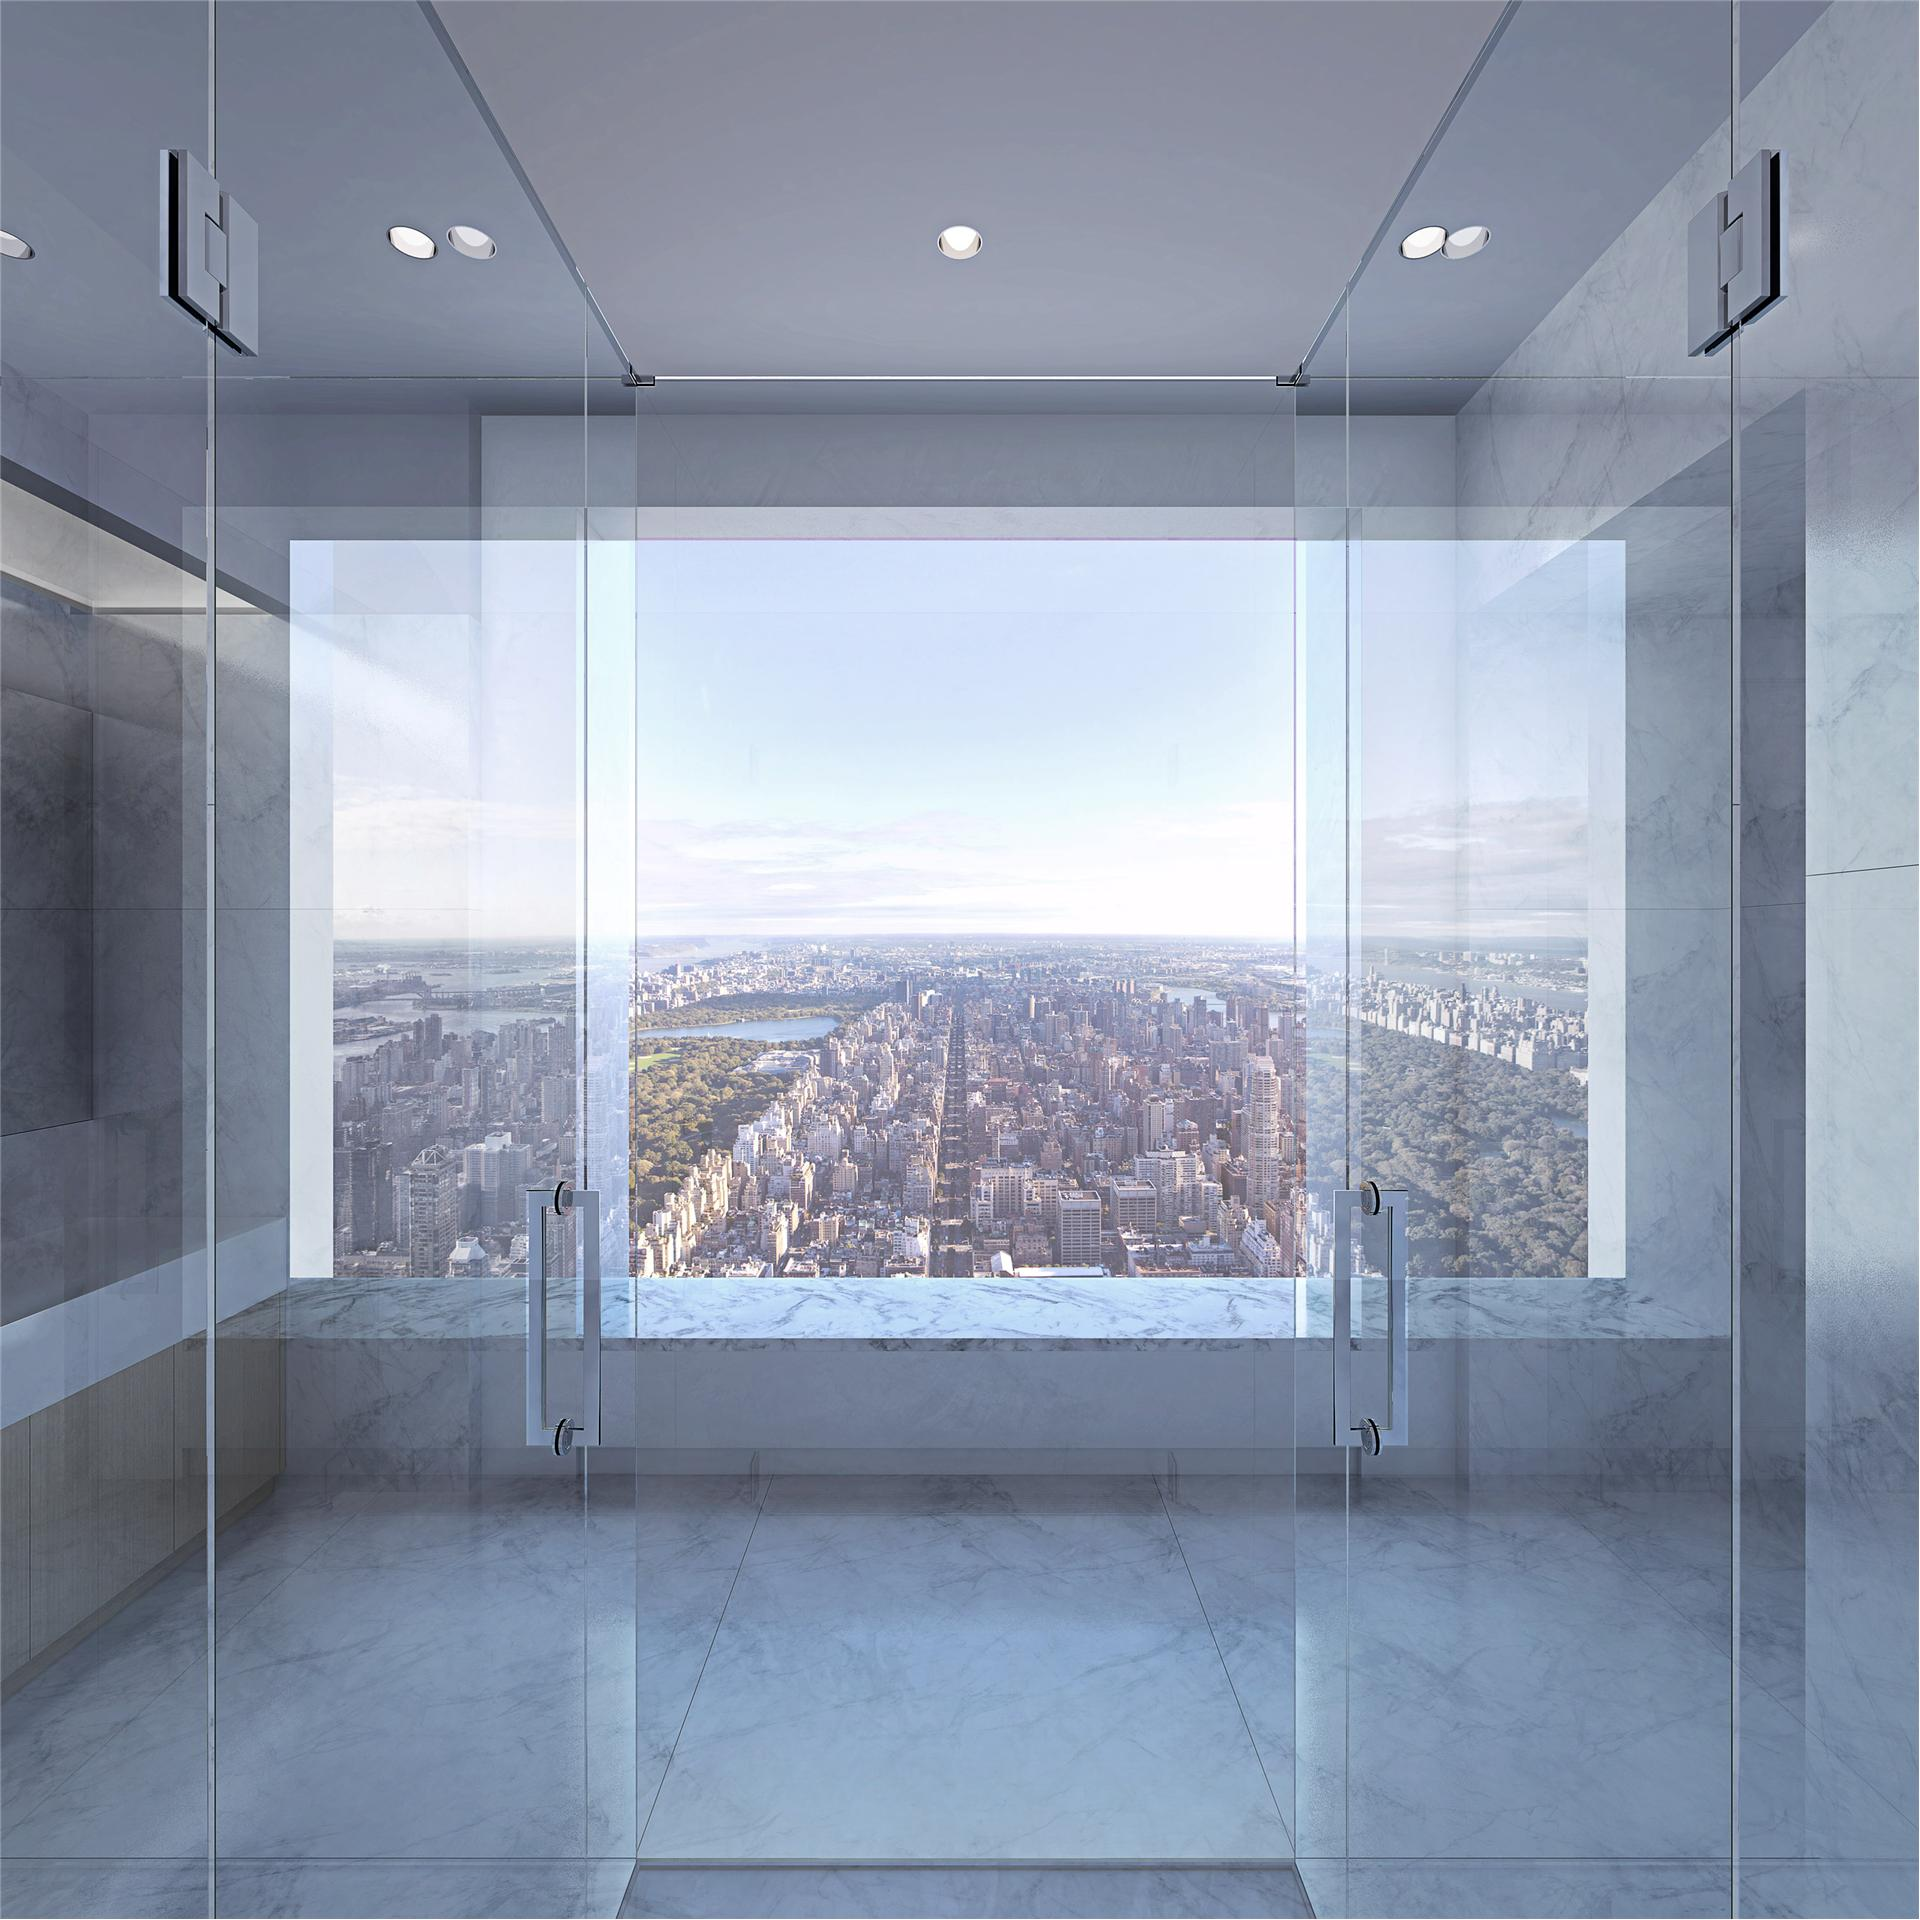 $95 Million Dollar Luxury Penthouse in New York-11